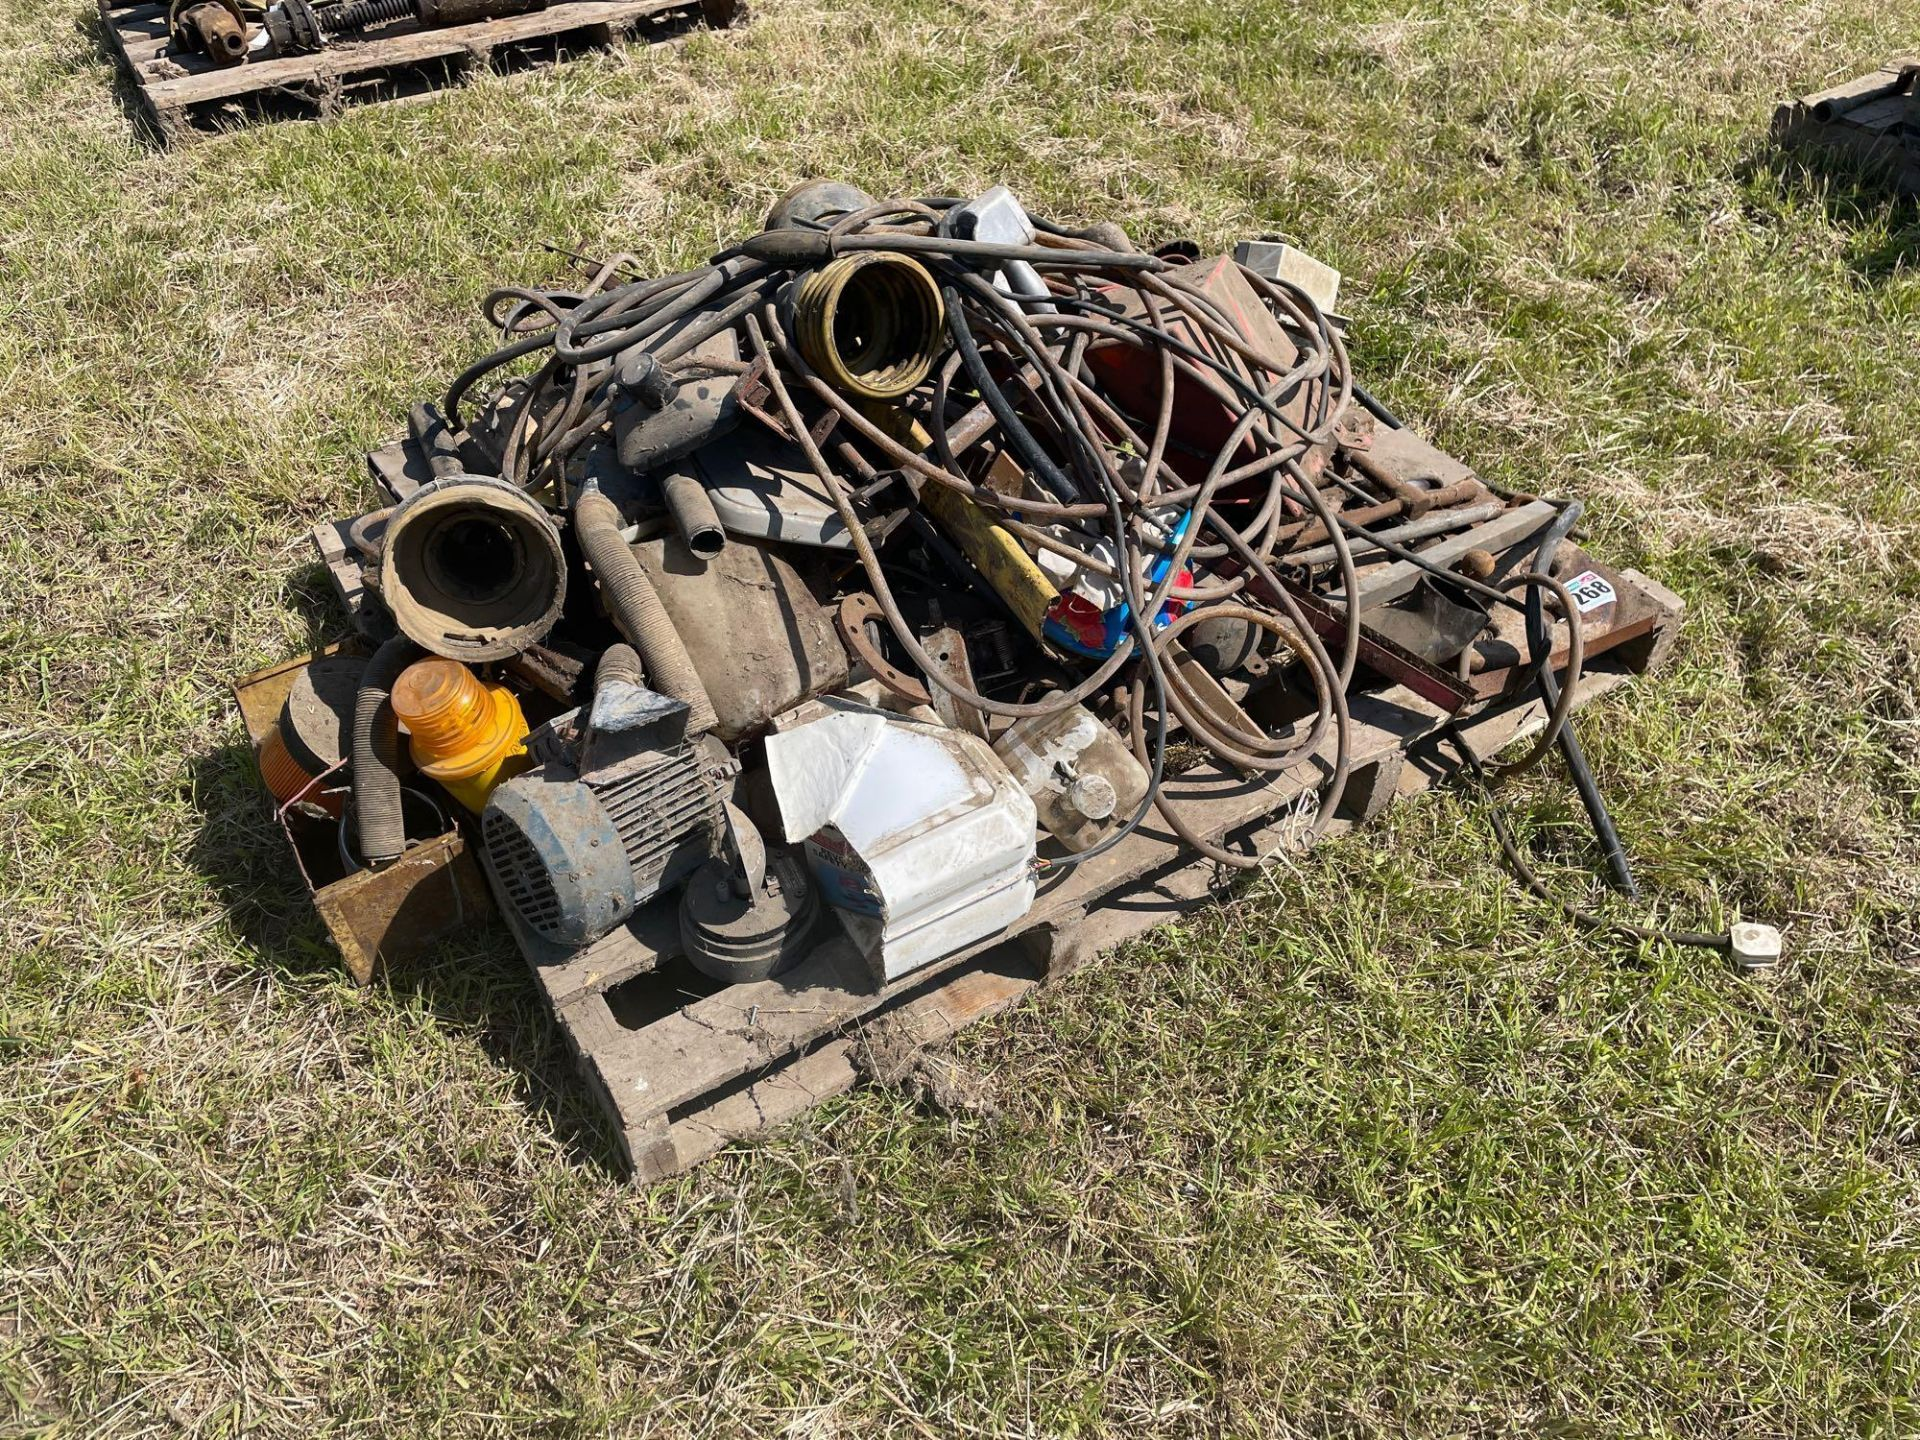 Various spares including electric motors